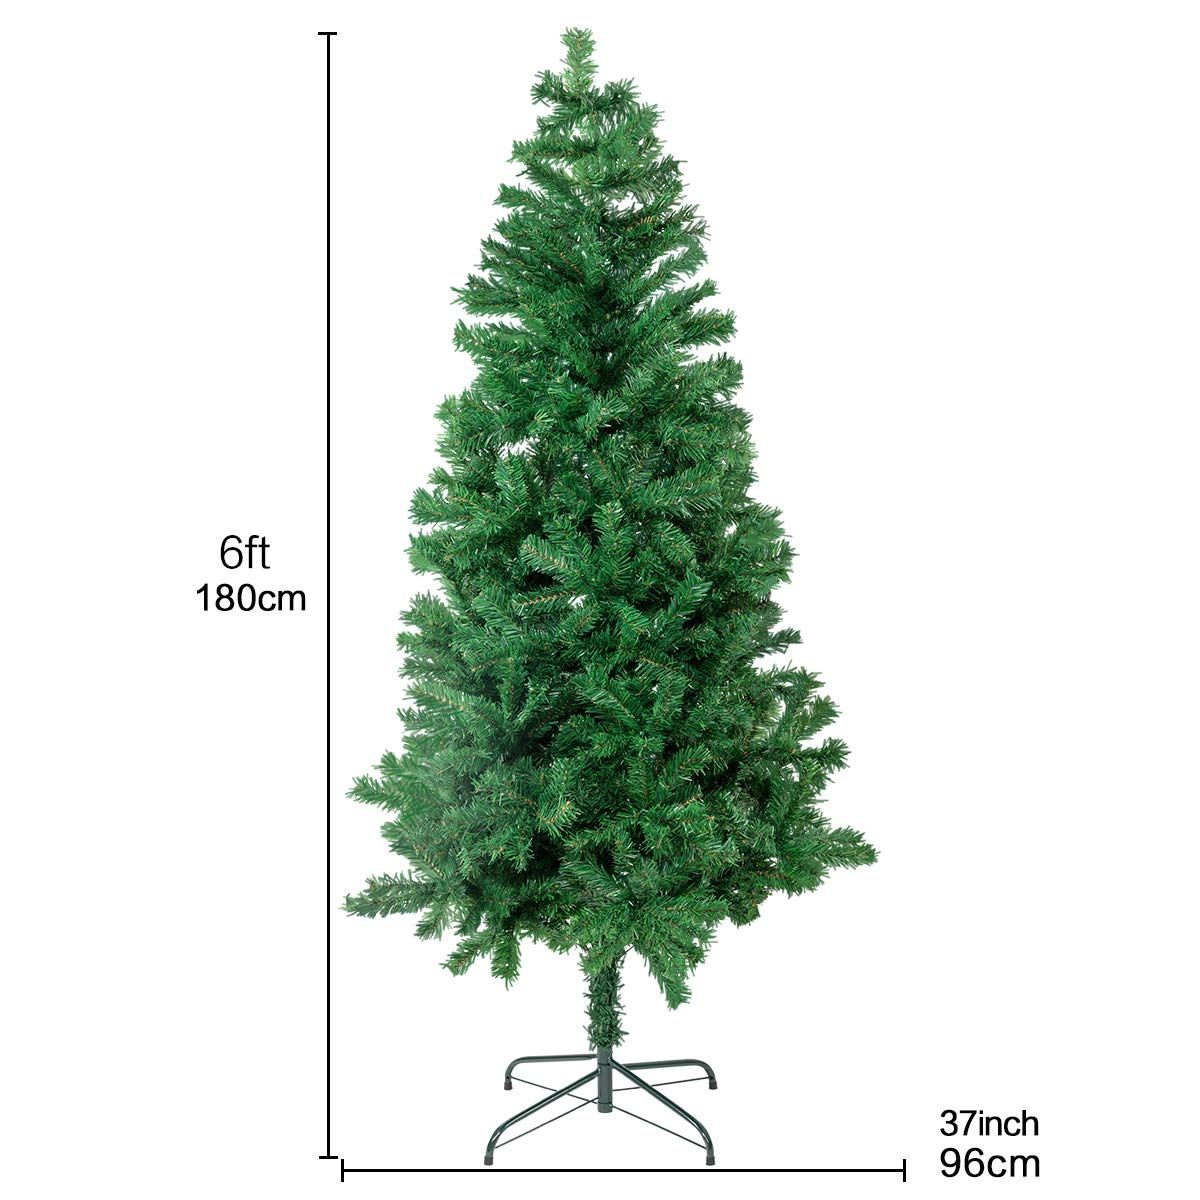 Bocca 6 Ft Christmas Artificial Pine Tree Full Branches With Strong Iron Stand Indoor And Outdoorgreen You Can Find More Details By Vi Tree Christmas Indoor